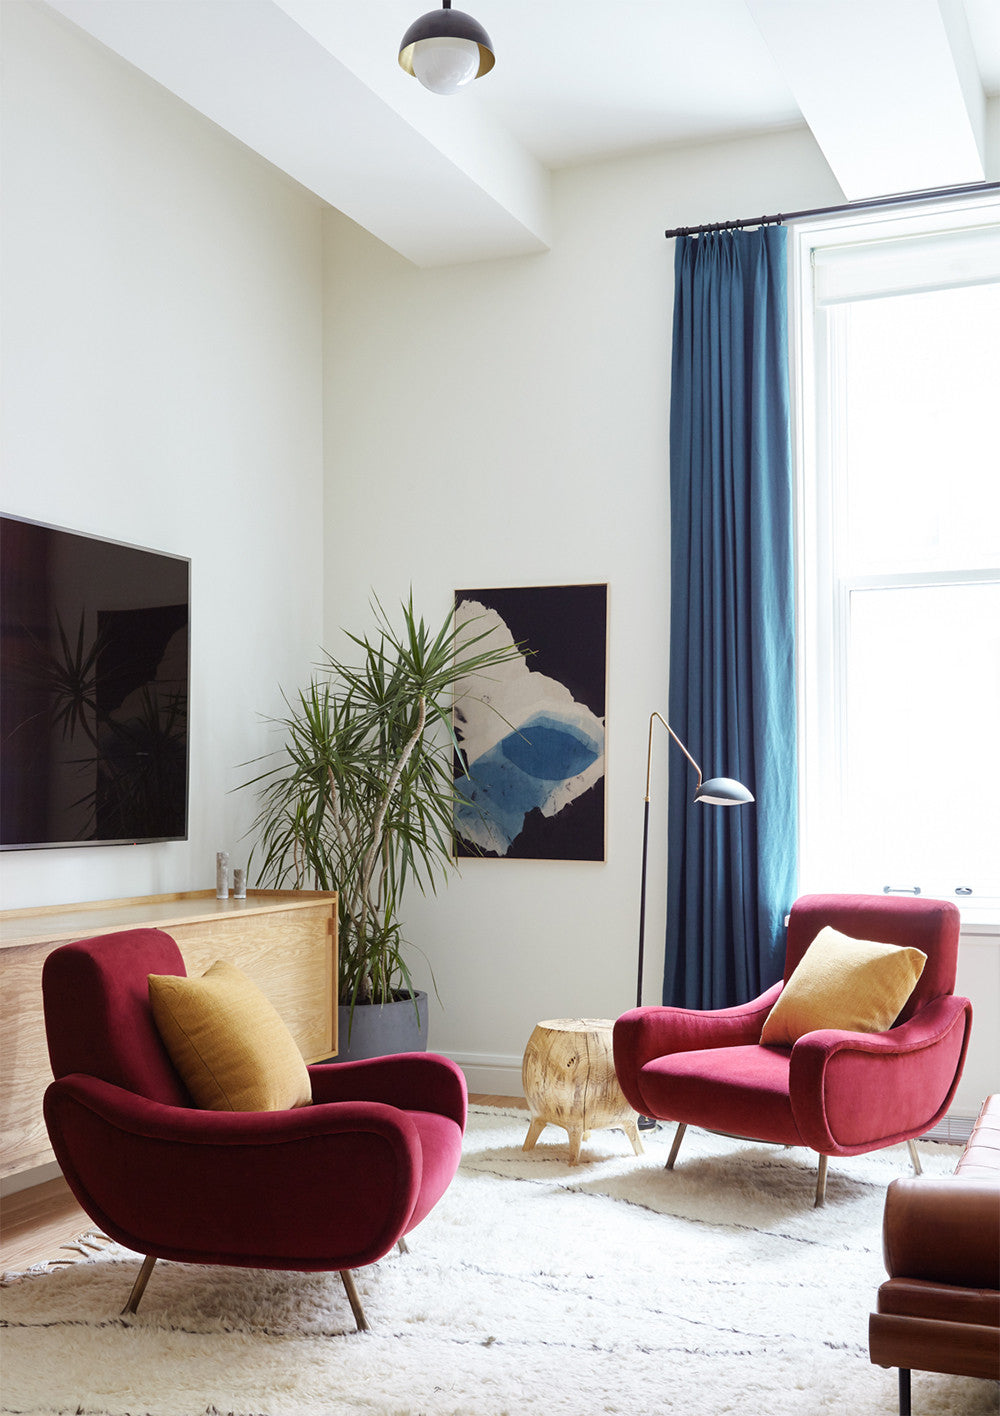 Cozy conversation corner Interior Design by Consort. Photo: Reid Rolls